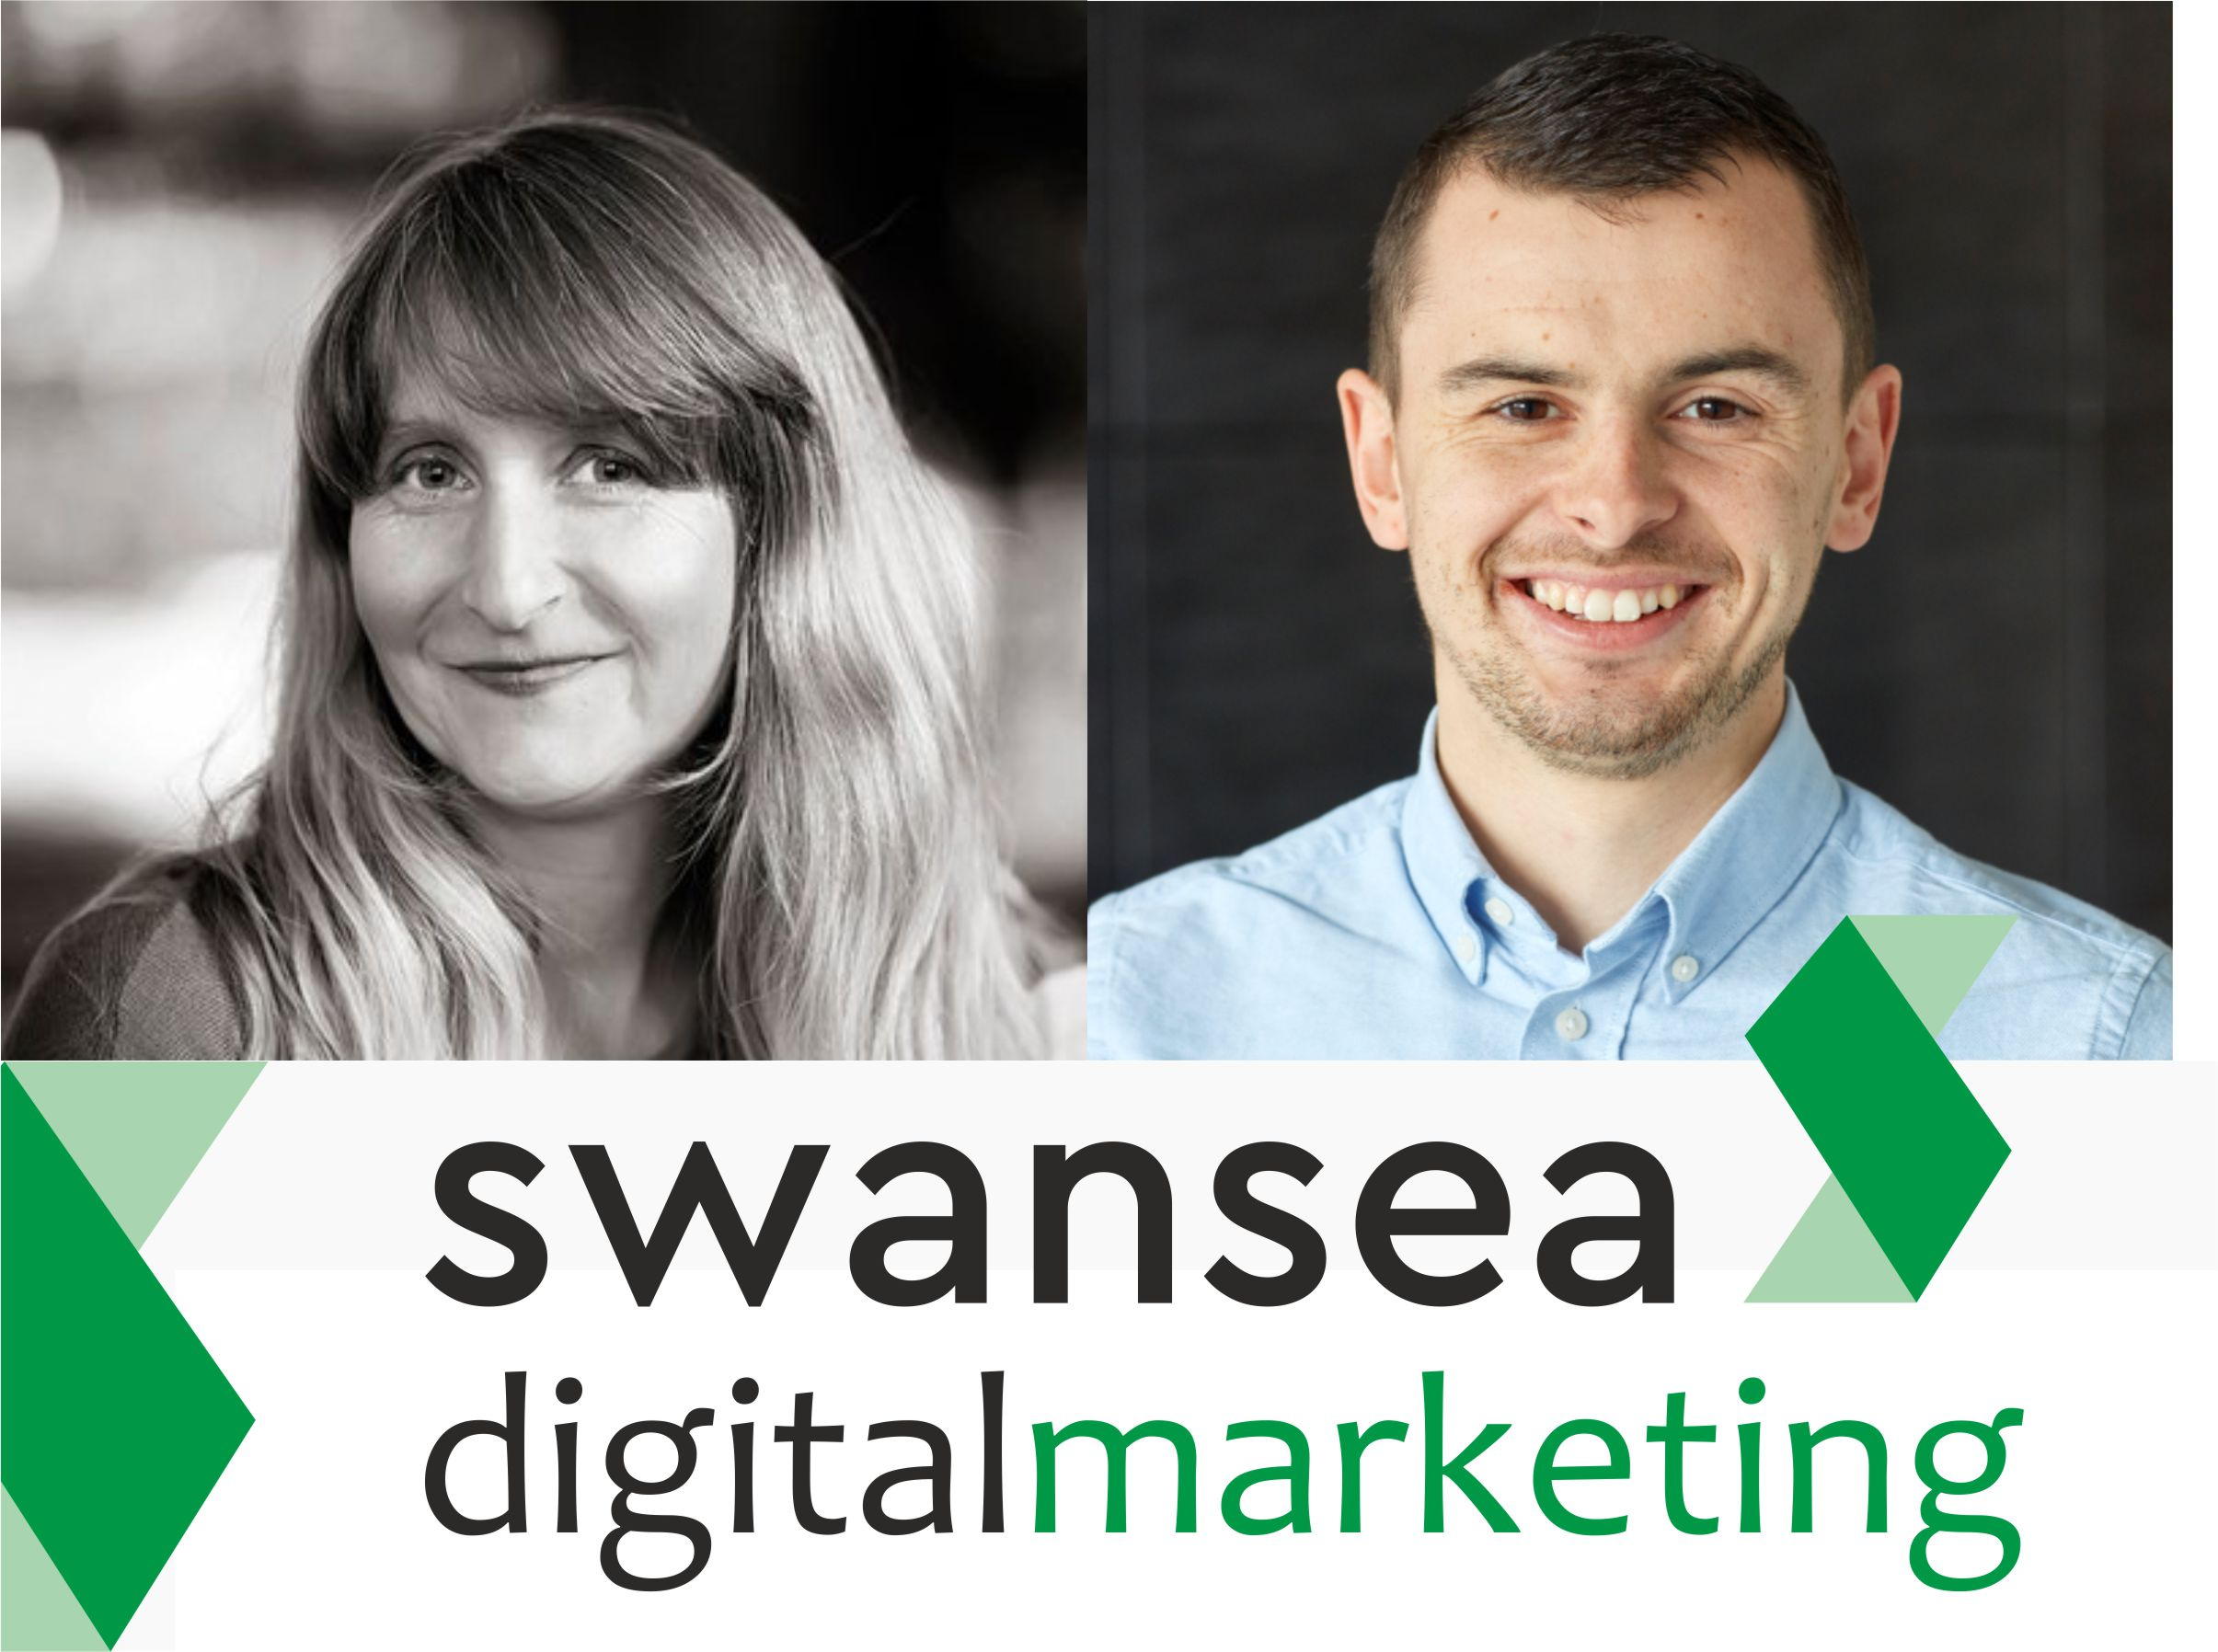 Swansea Digital Marketing & SEO Meetup #1 Speakers